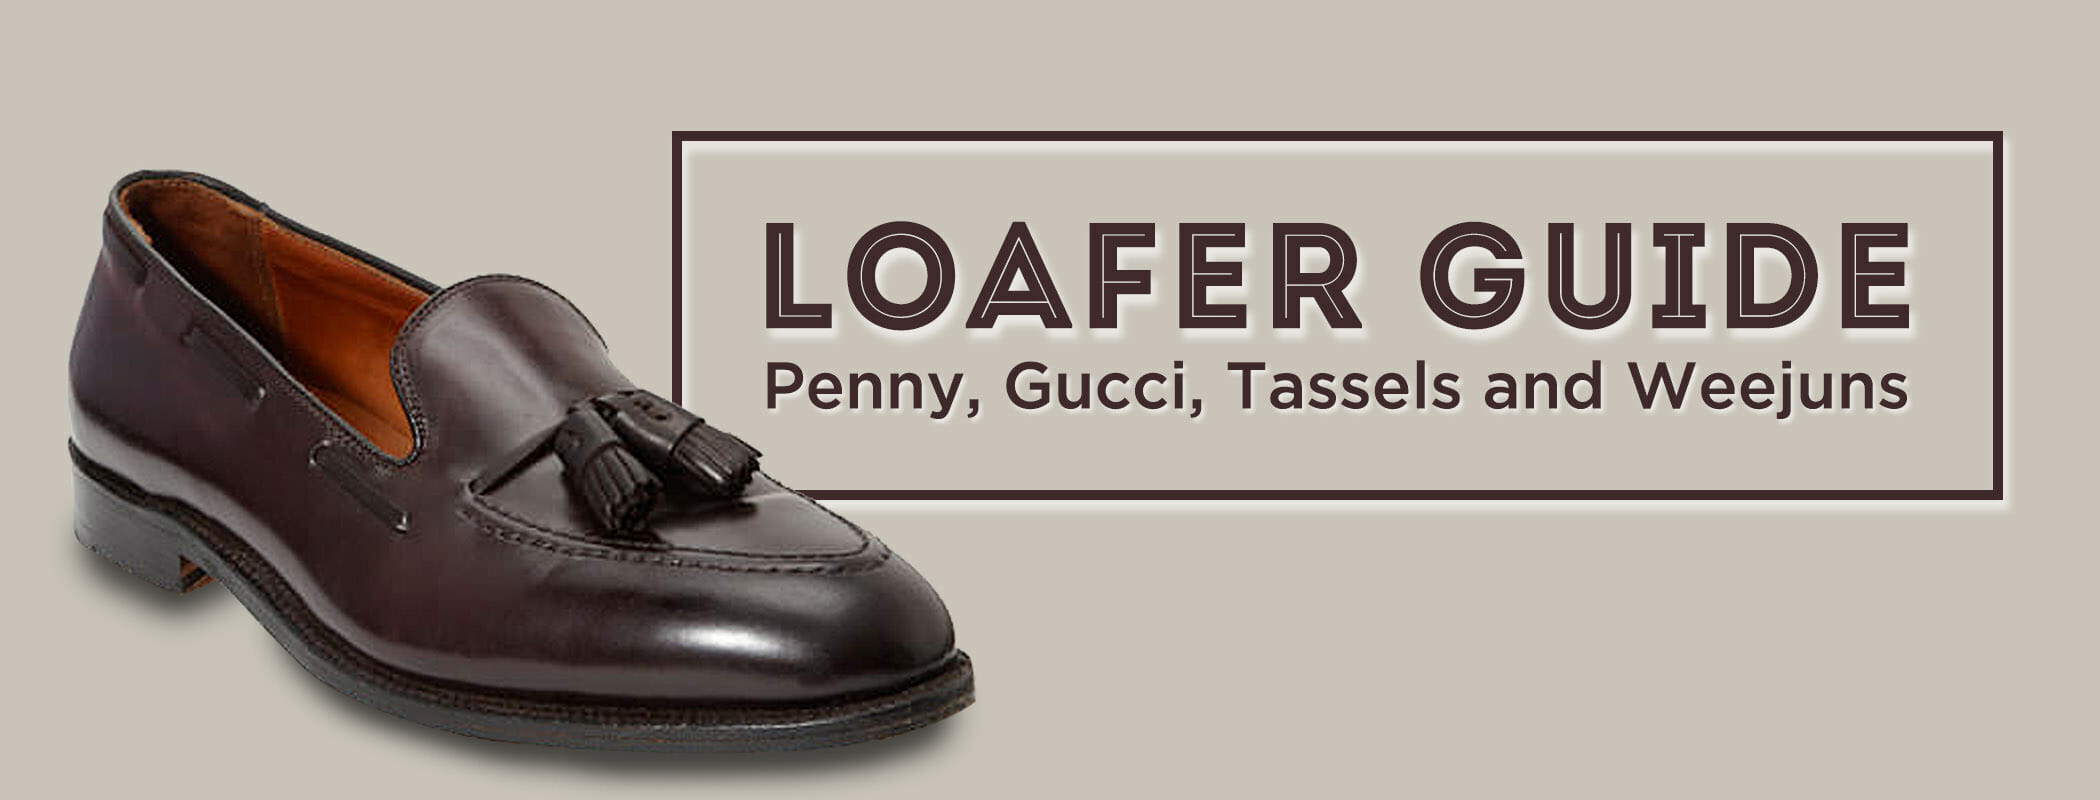 aef9b3f9907e Loafer Shoes Guide For Men - Penny Loafers, Tassels & Gucci ...